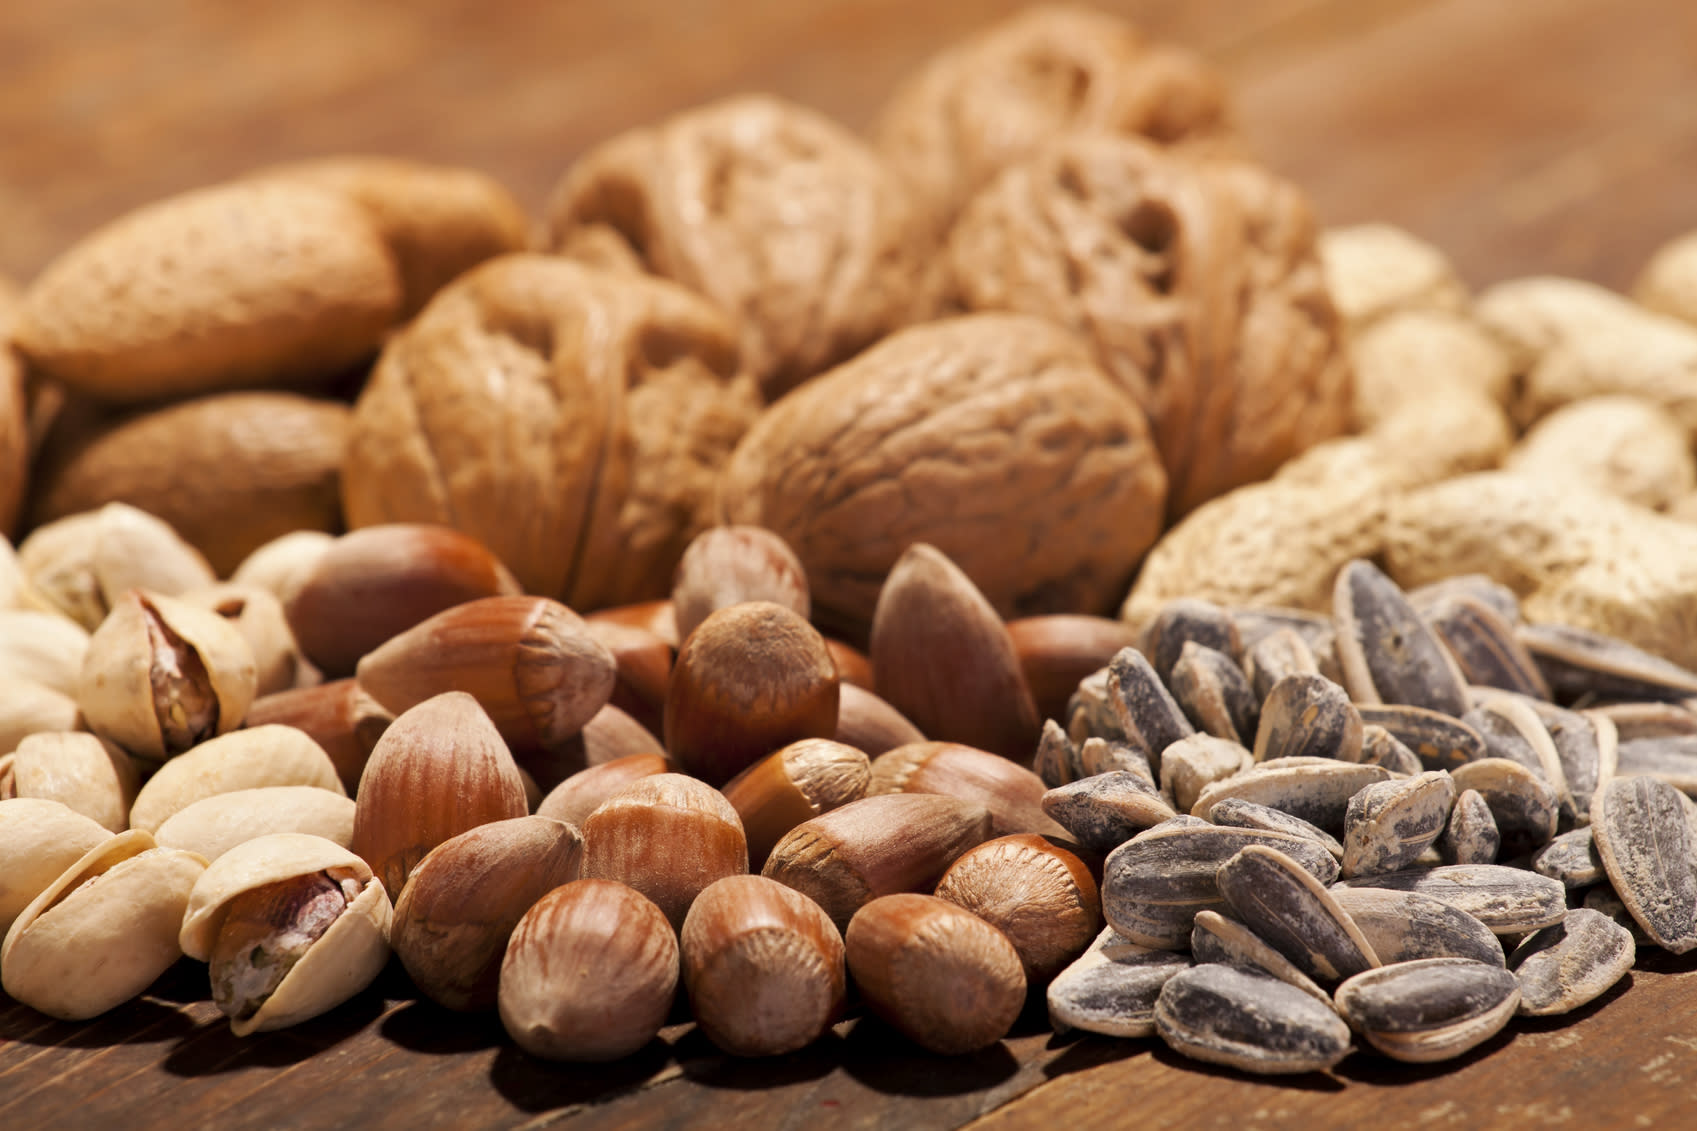 Eating nuts twice a week lower risks of death from heart disease